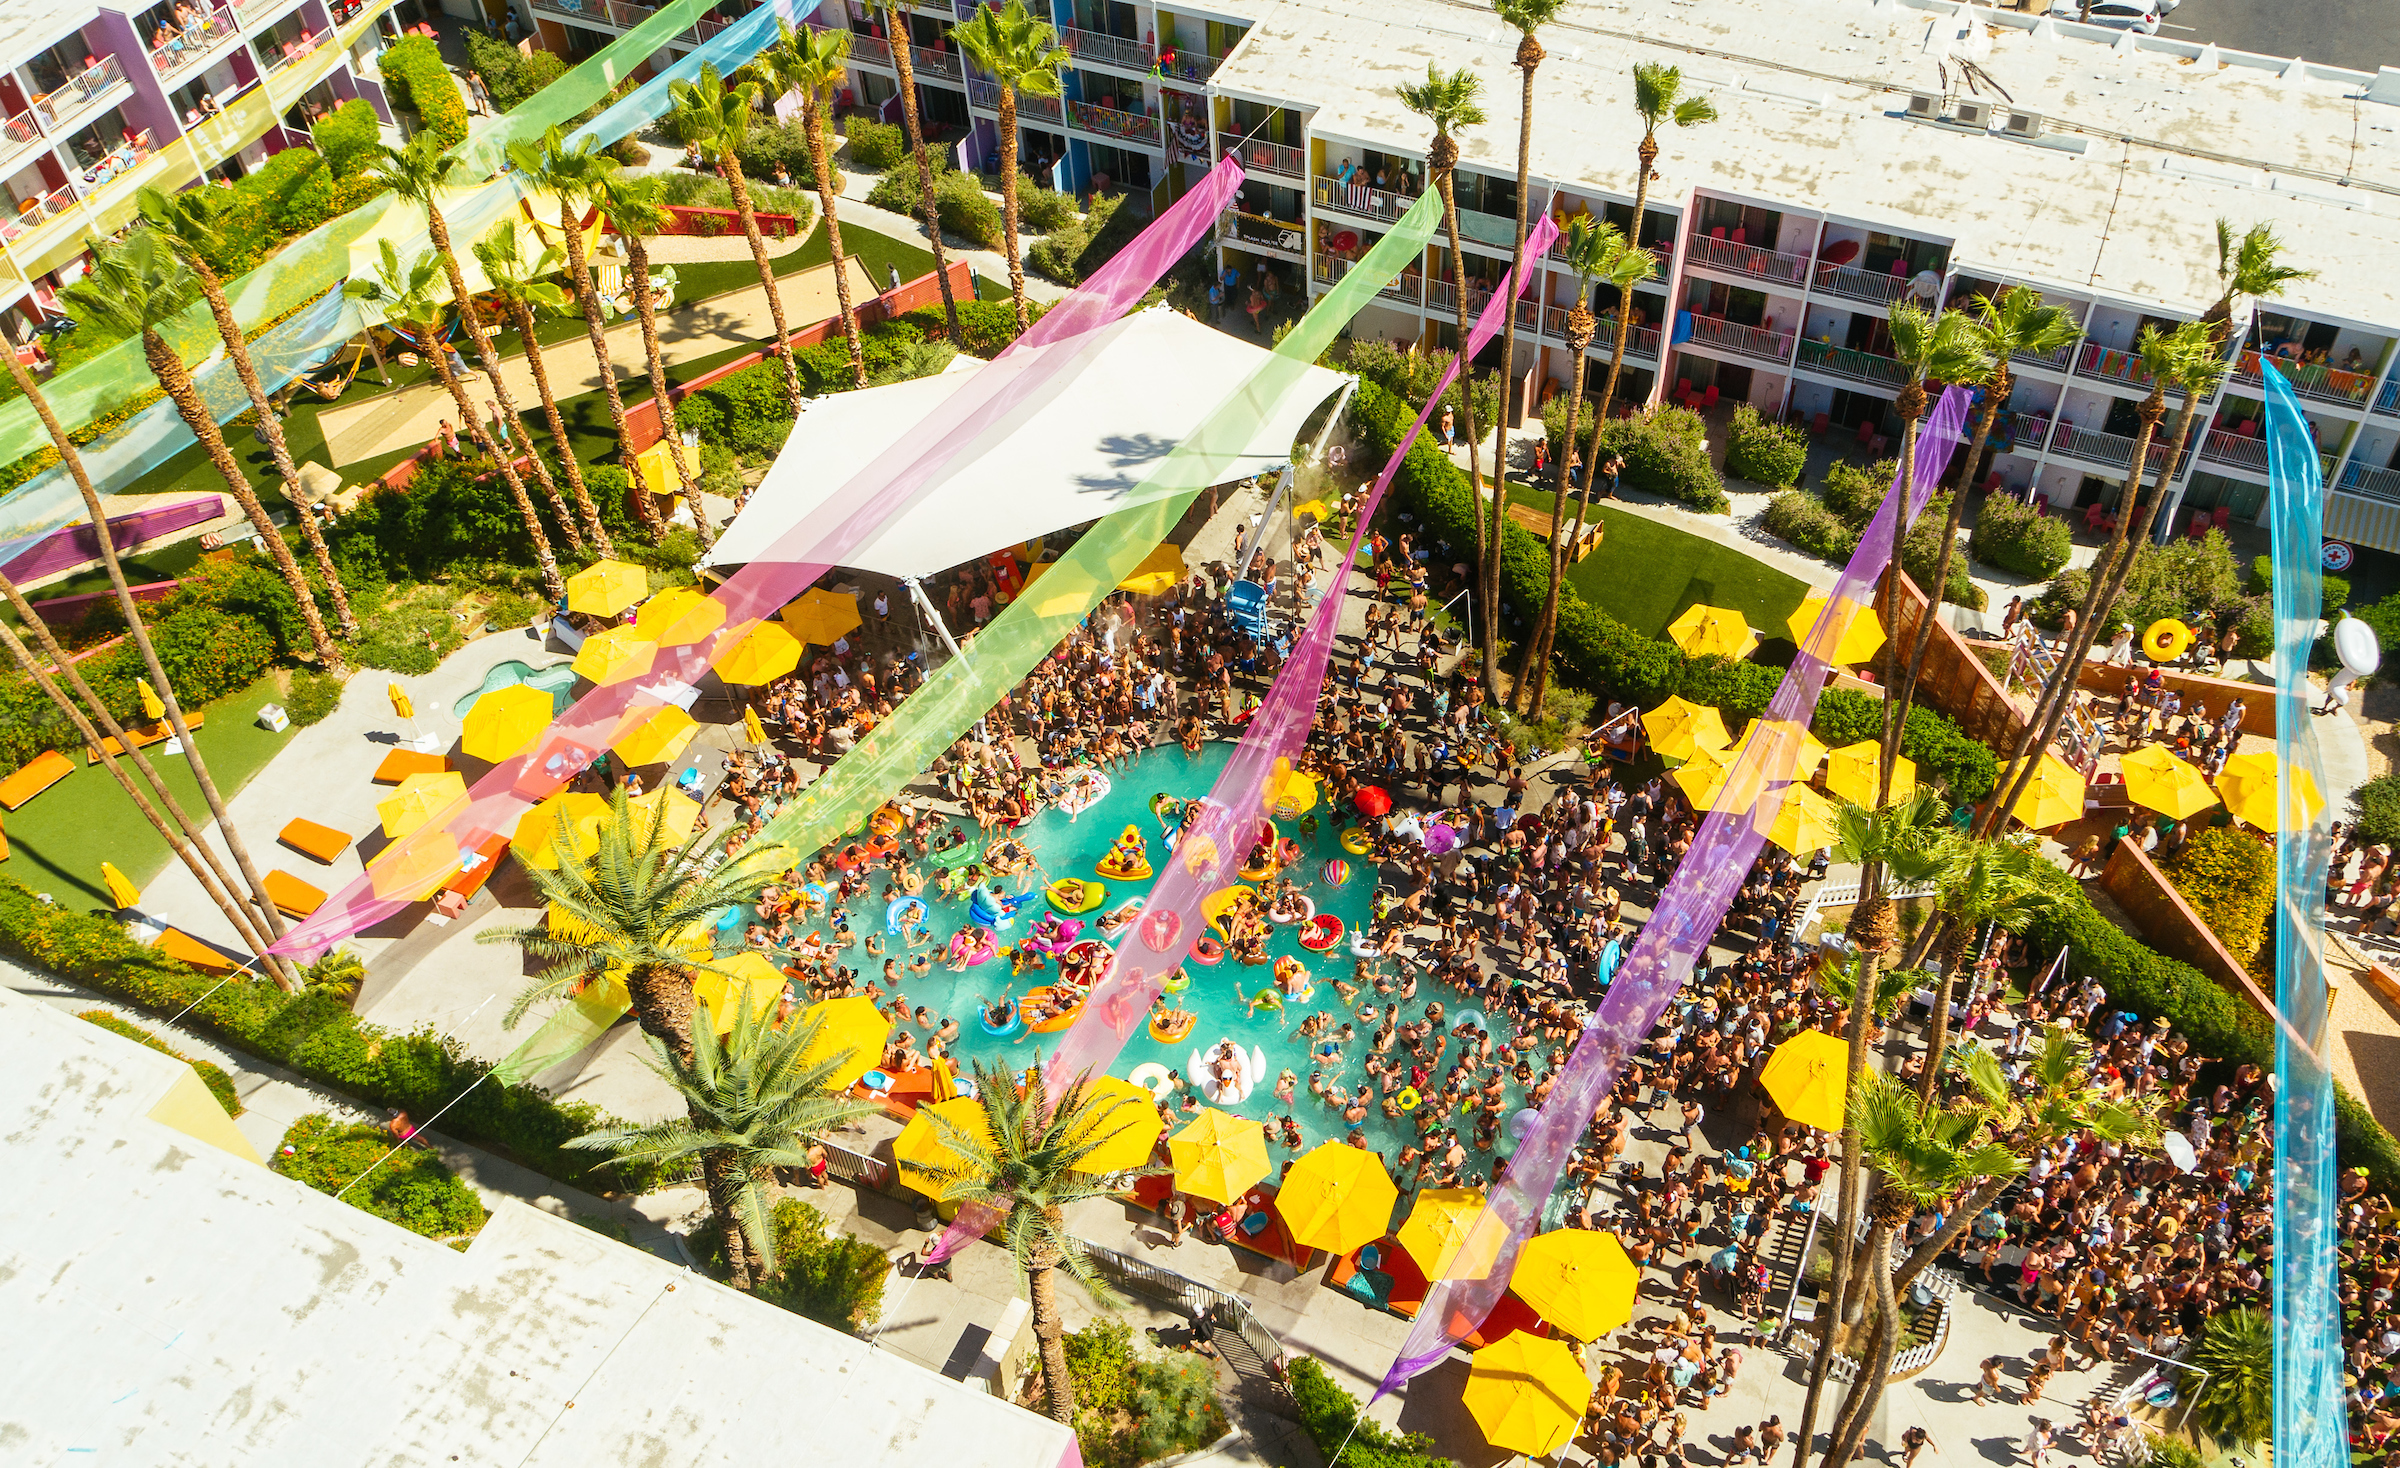 Explore Palm Springs, CA | Hotels & Things to Do in Palm Springs on morton botanical garden palm springs, map of greater palm springs, google map of palm springs, street map of palm springs, map of california and palm springs, celebrities living in palm springs, map of california cities palm springs, map of california showing palm springs, good neighborhoods in palm springs, map of cities around palm springs, i-10 palm springs, downtown palm springs, united states map with palm springs, famous people in palm springs, map of southern california palm springs, best shopping in palm springs, map of hotels in palm springs, map stars homes palm springs,